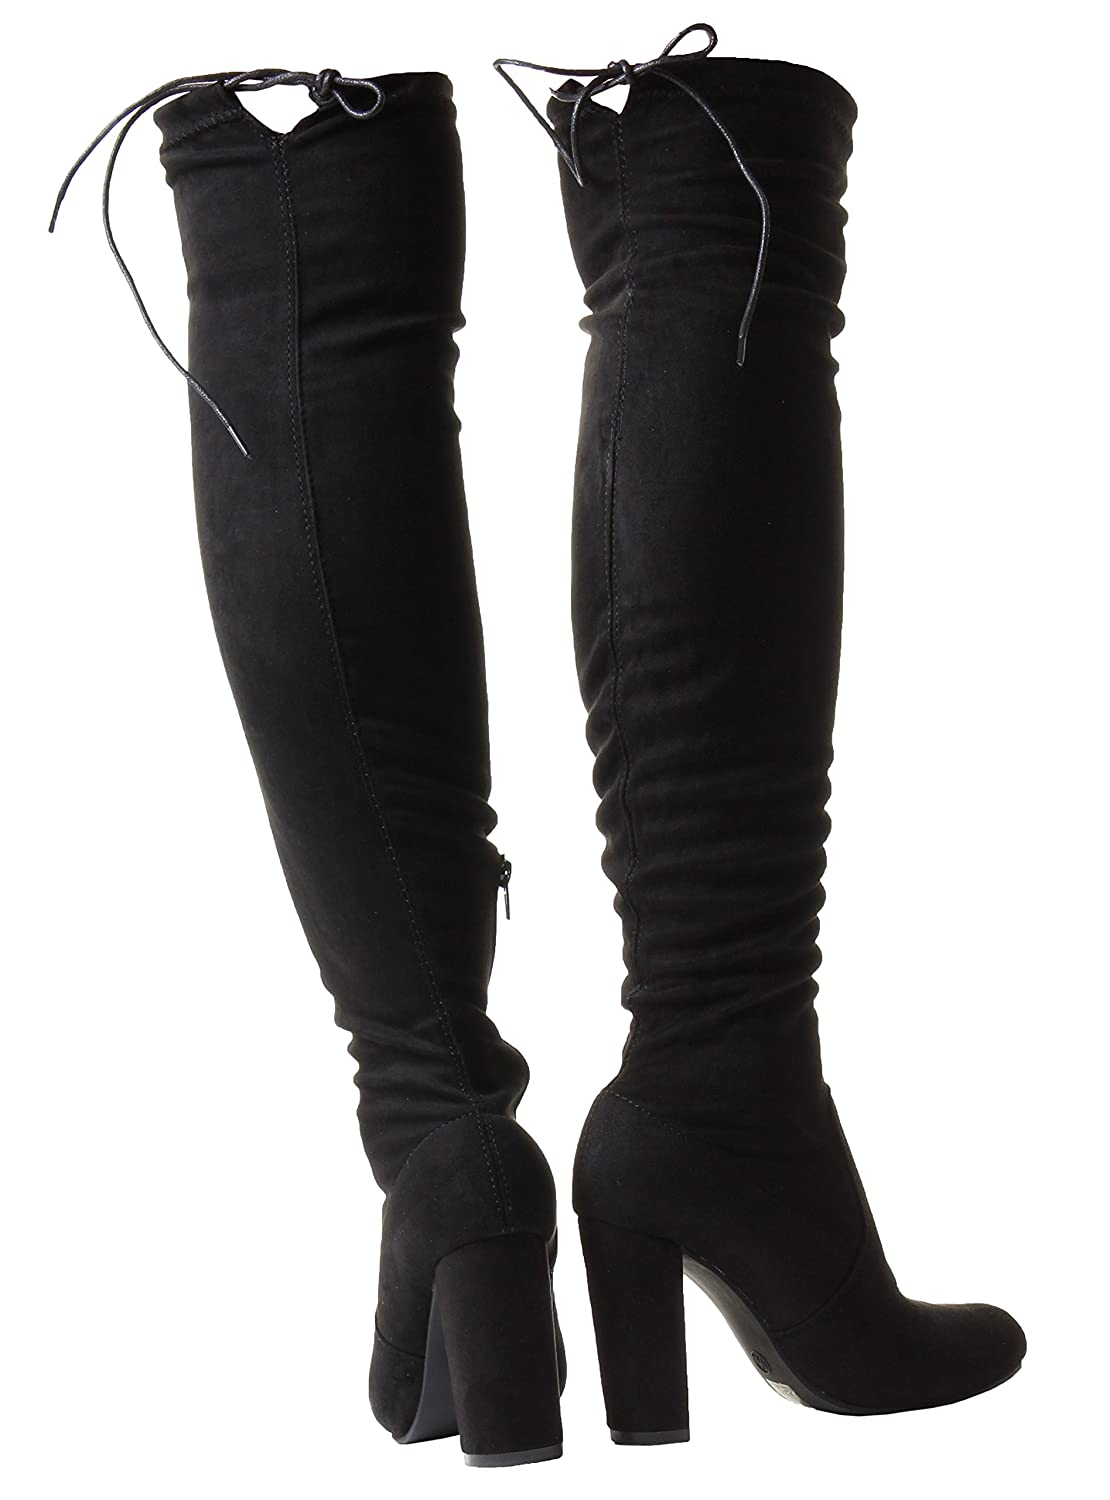 52d7972b92a New Womens Wide Slim Stretchy Leg Thigh Over The Knee Wide Fit Stretch  Black Suede High Heel Boots 3 4 5 6 7 8 Sizes  Amazon.co.uk  Shoes   Bags